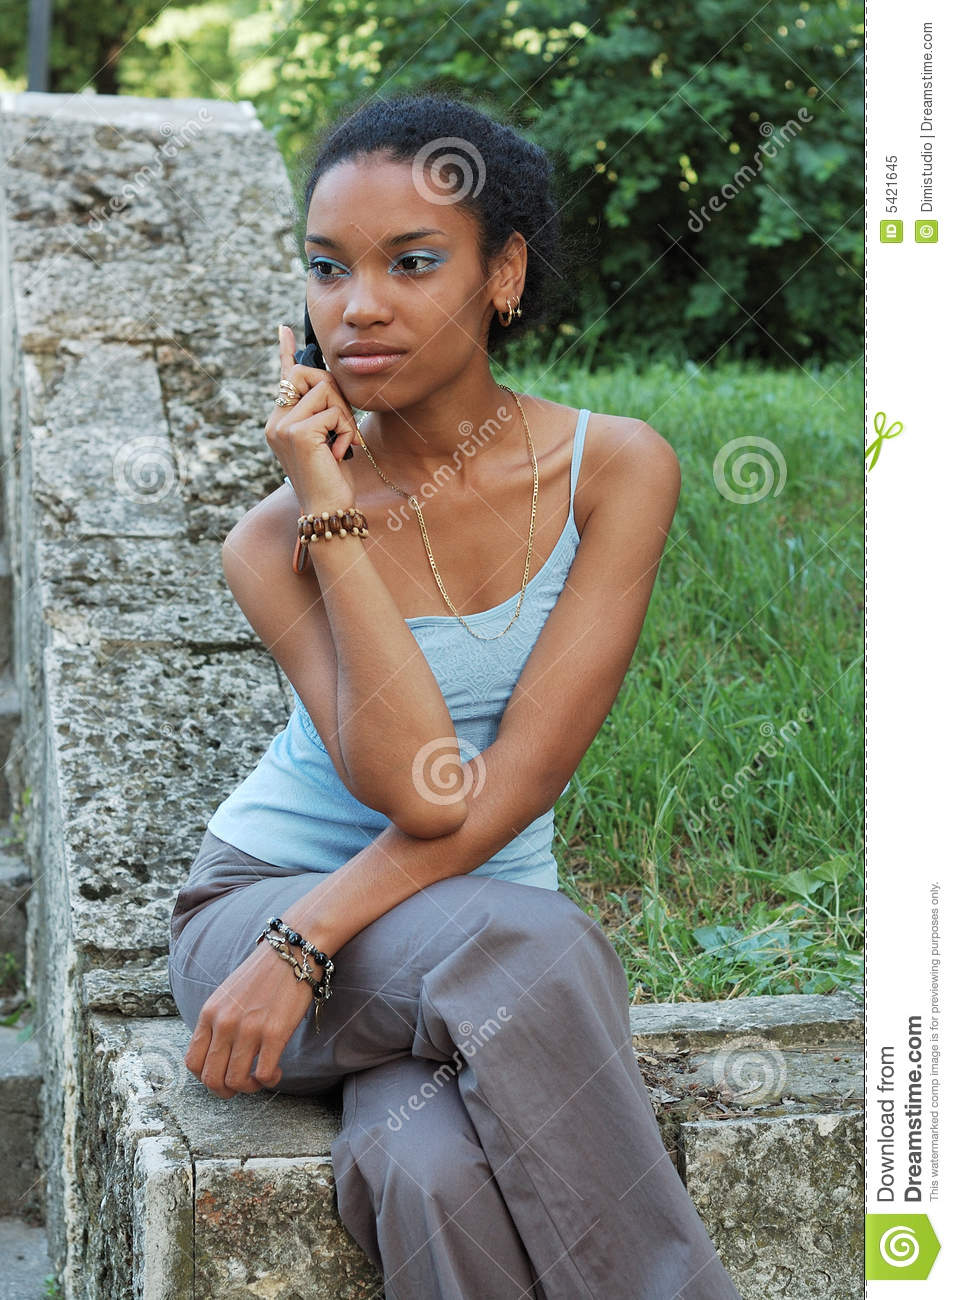 Naked black girl pics from cellphkne remarkable question